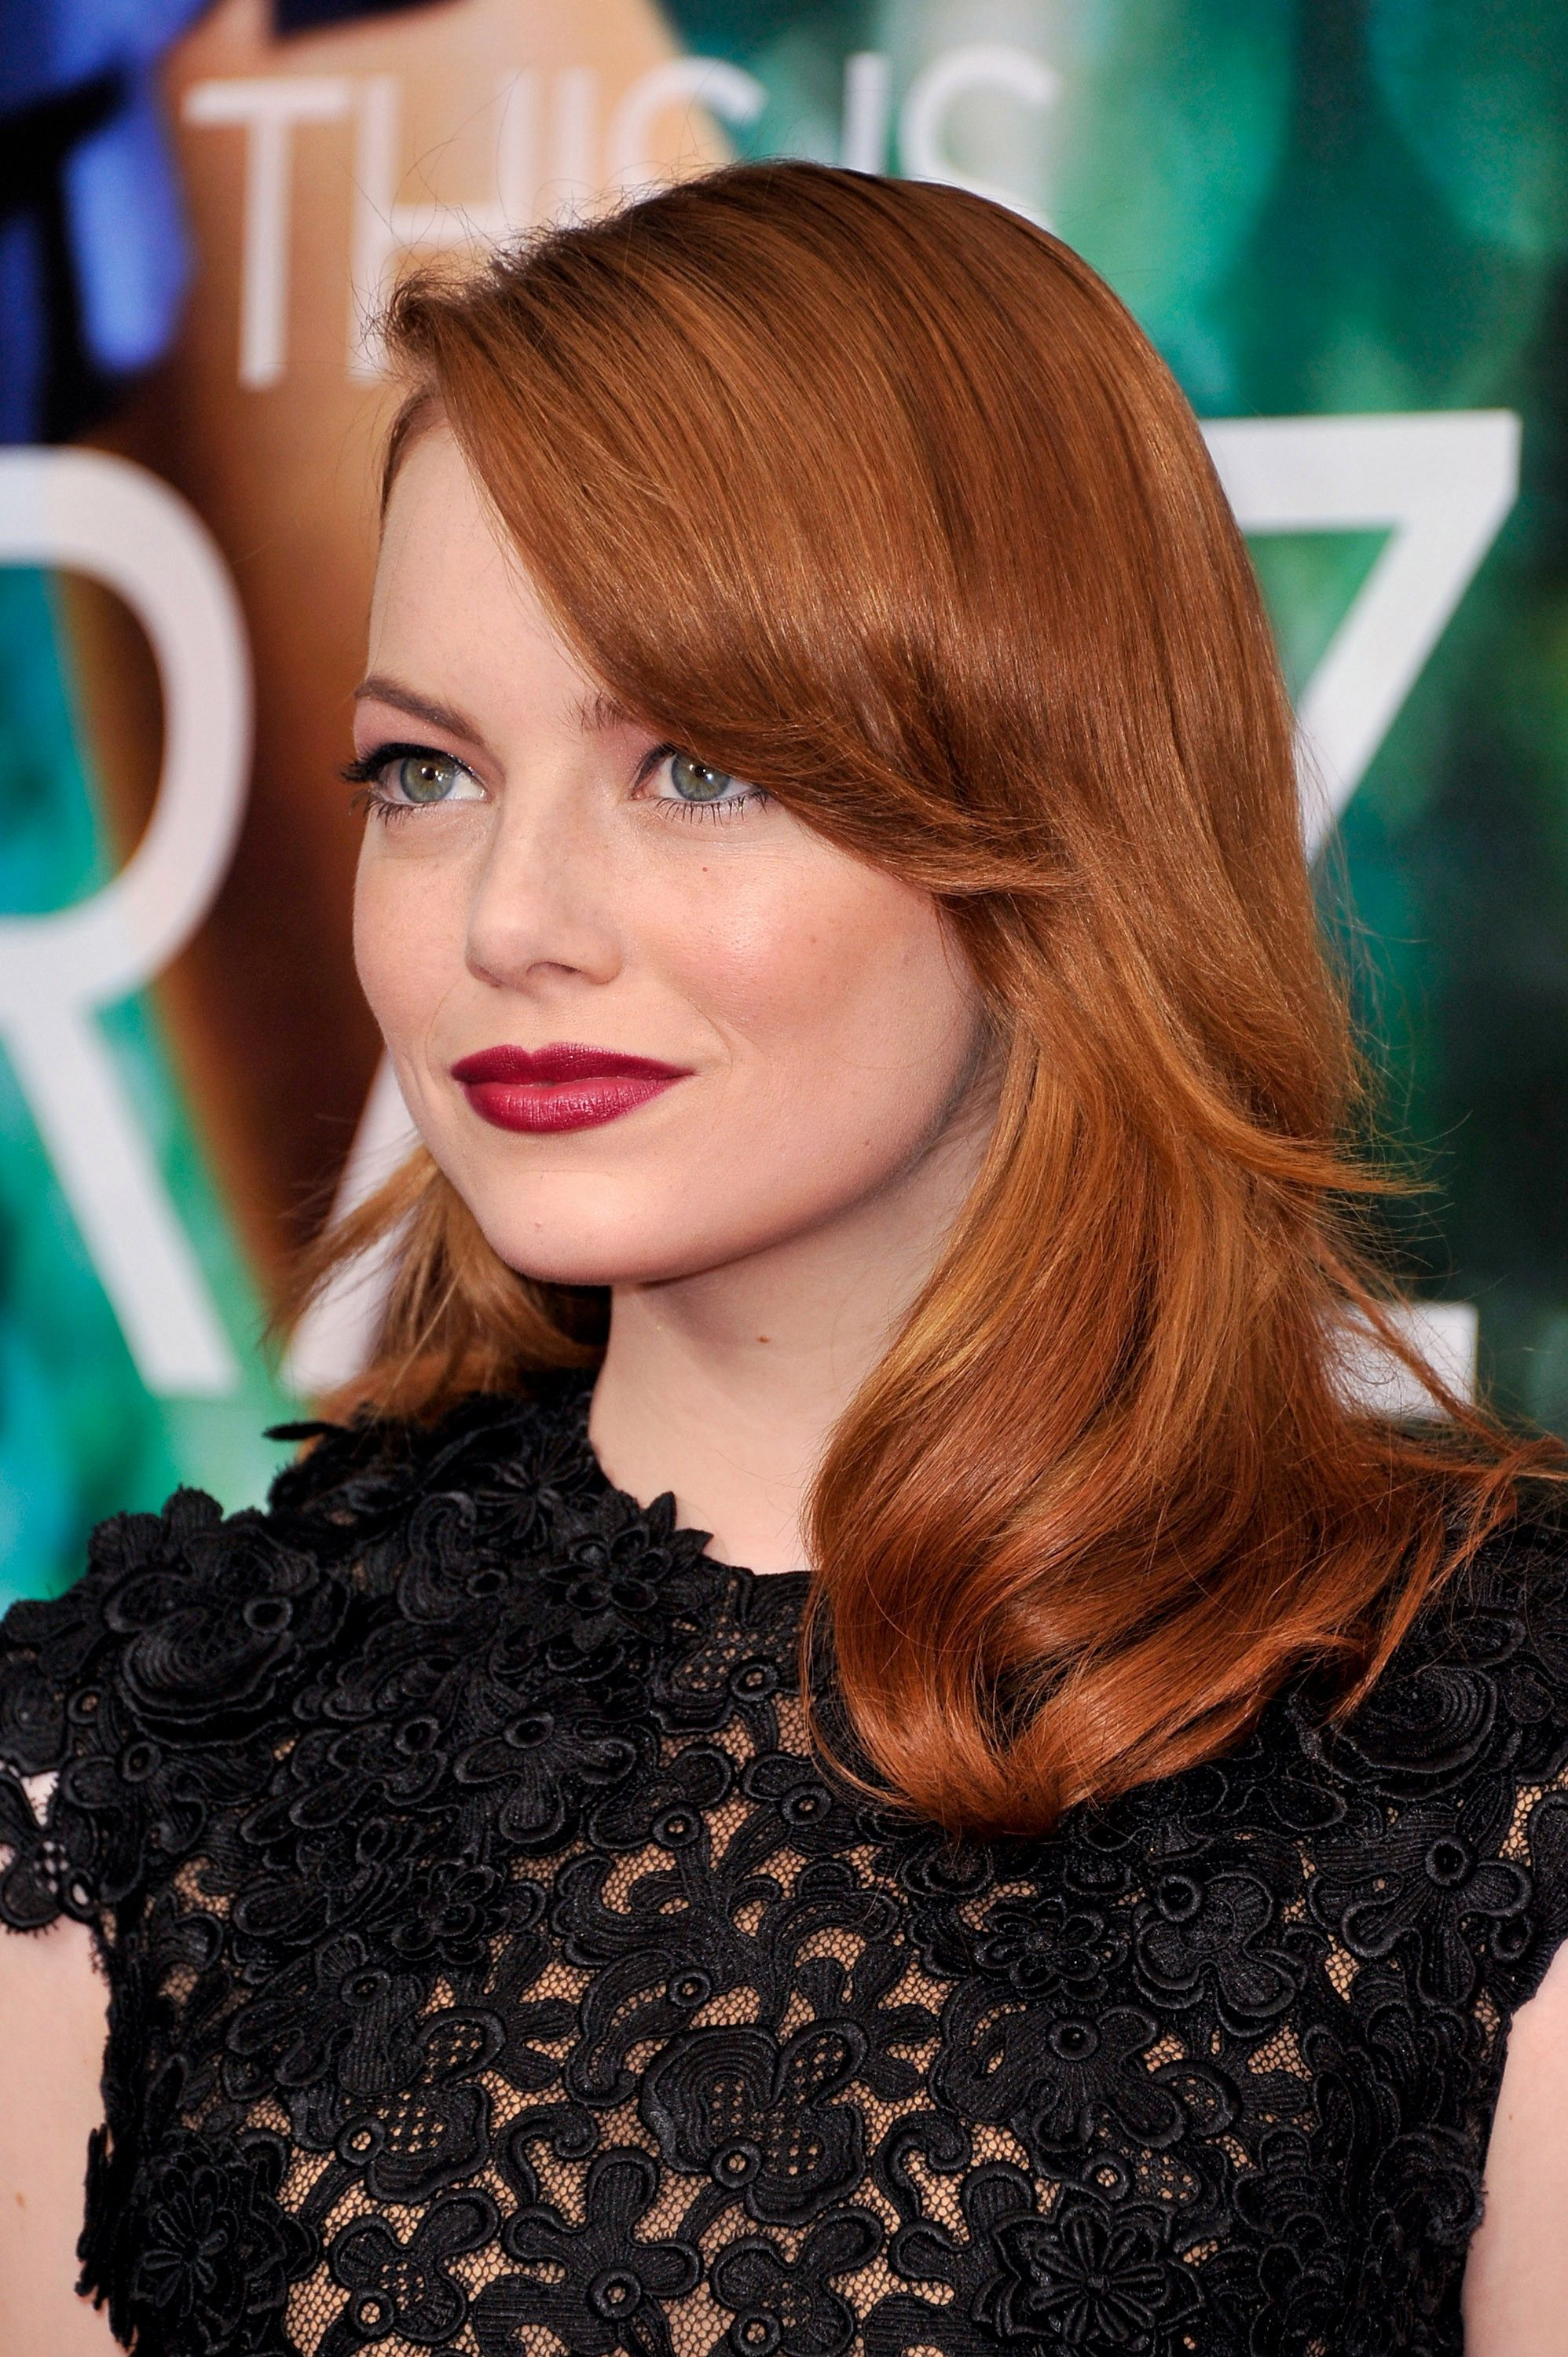 Emma Stone Couleur De Cheveux The Best Lipstick For Redheads A Guide To Choosing The